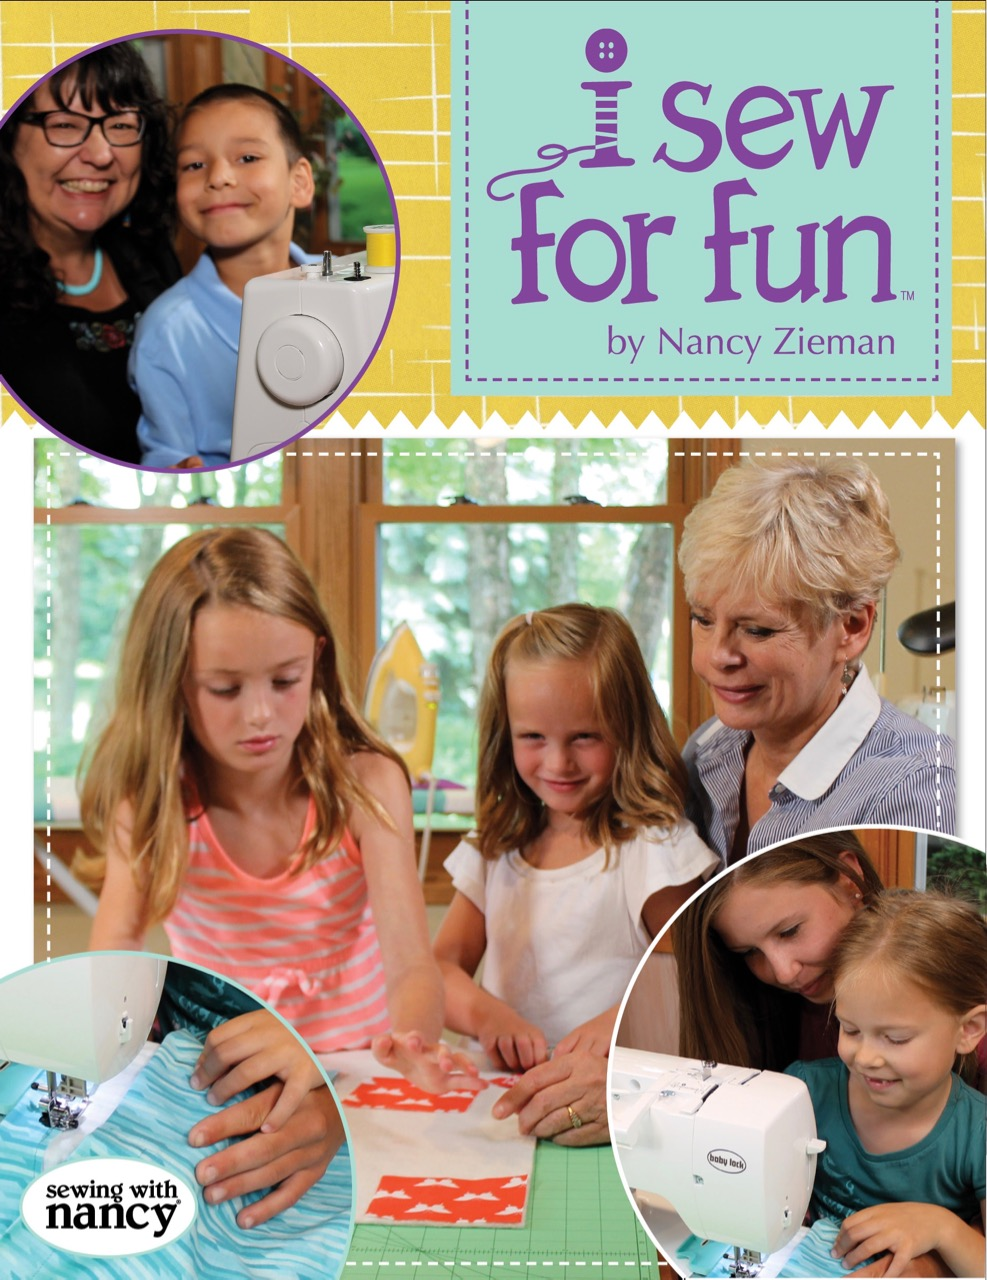 I Sew For Fun Book by Nancy Zieman as Seen on the Sewing With Nancy Television Show